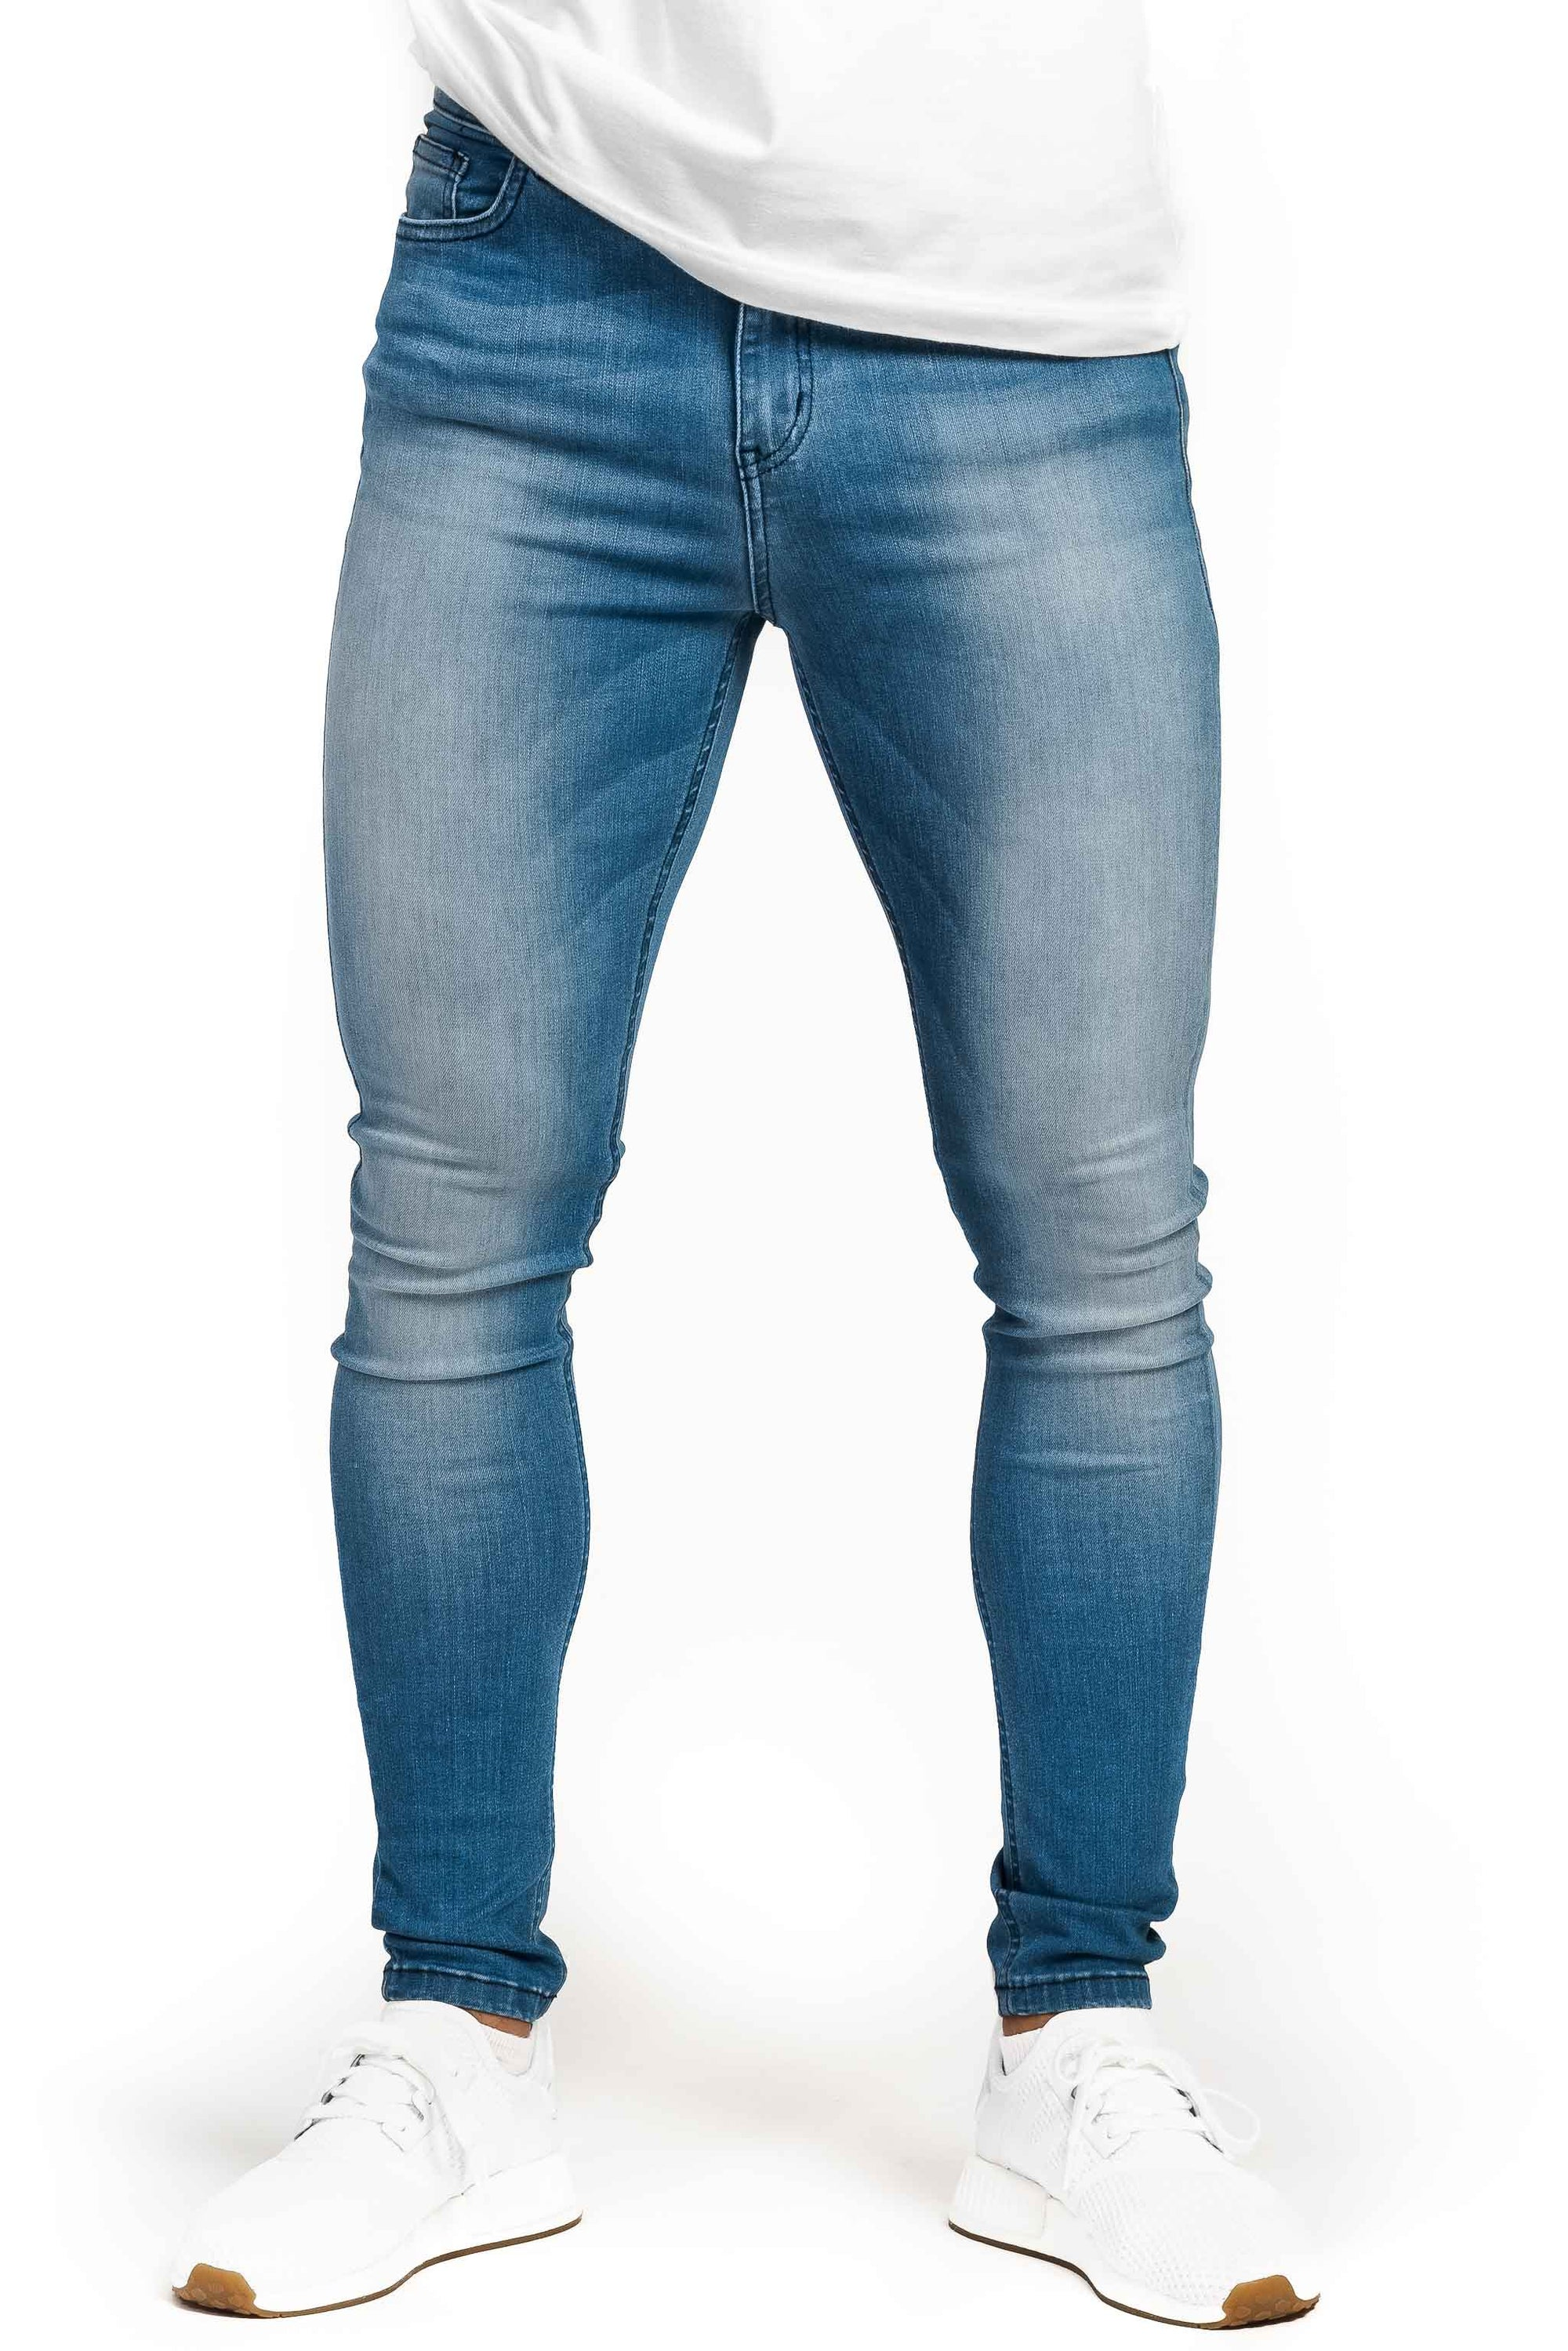 Mens Regular Fitjeans - Arctic Light Blue - Fitjeans Norge